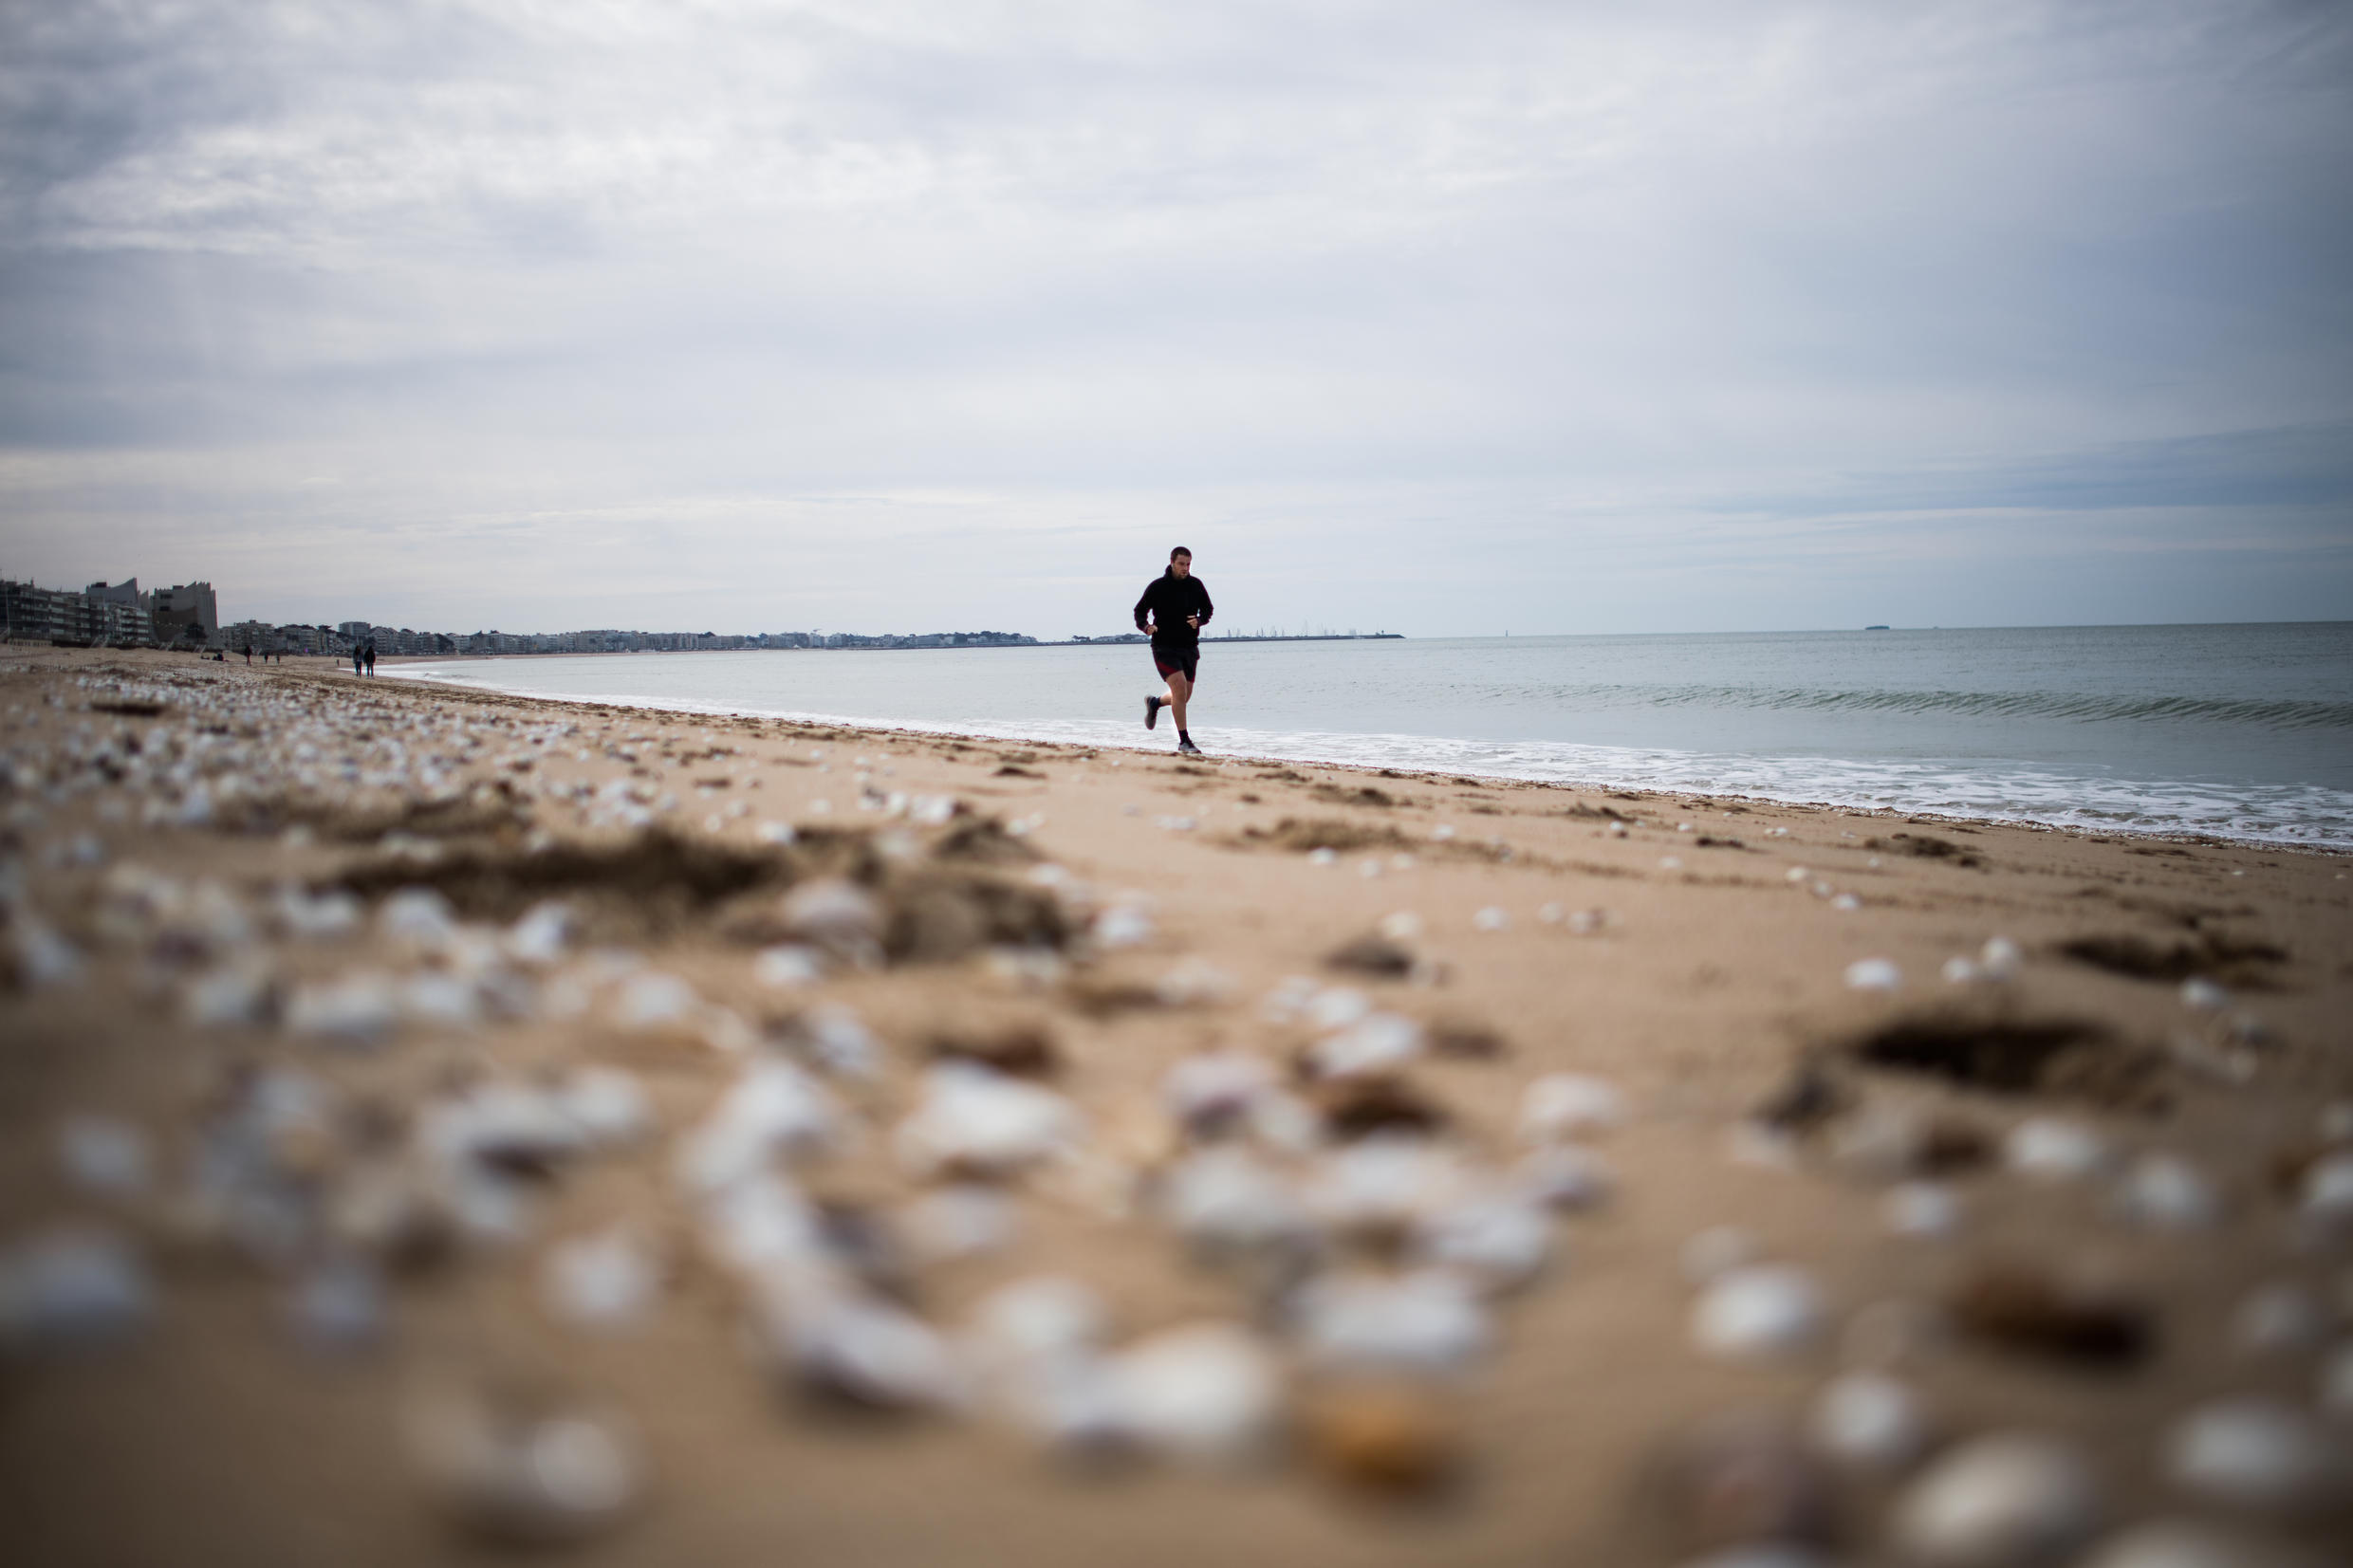 Officials opened some beaches on the west coast of France, but not for static activity such as picnic parties or sunbathing